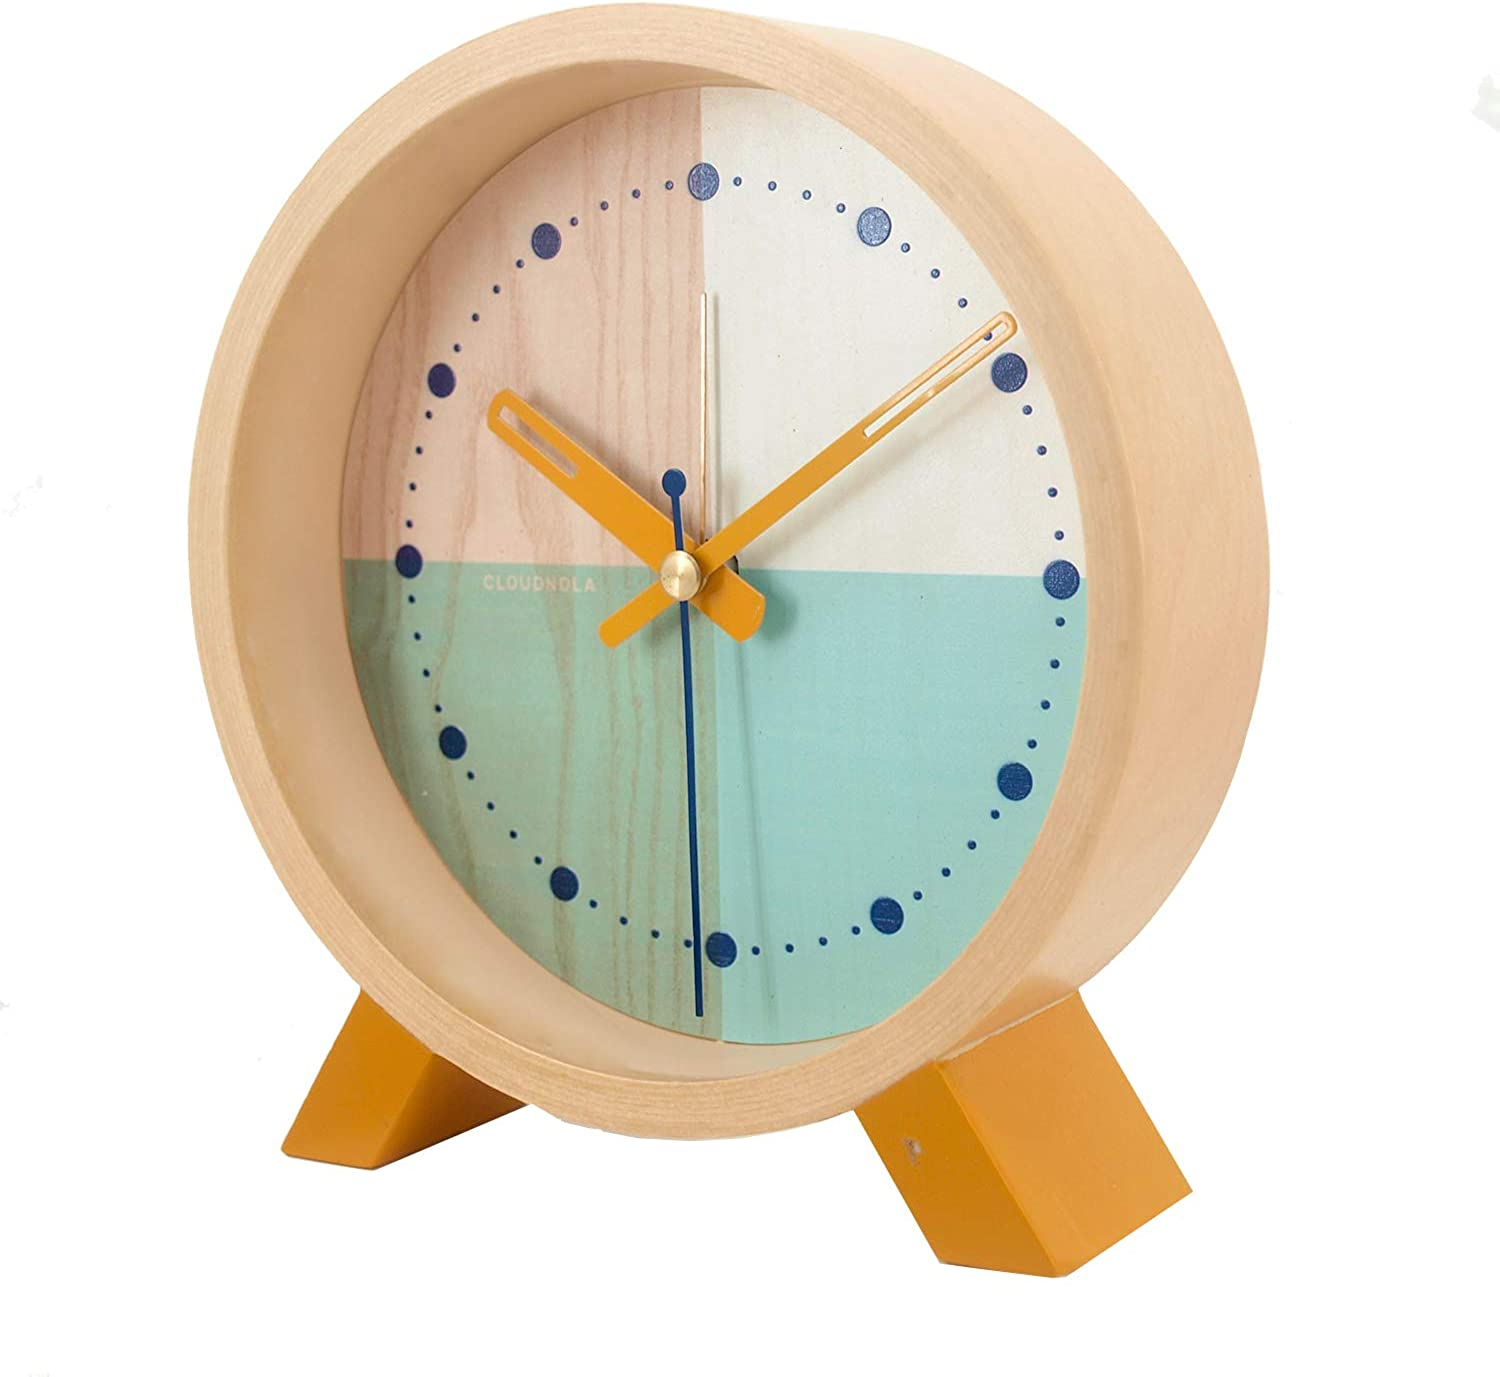 Cloudnola Flor Turquoise Desk Clock   Diam 6 Inches   Silent Mechanism + Alarm Function Great for Bedrooms or Living Rooms